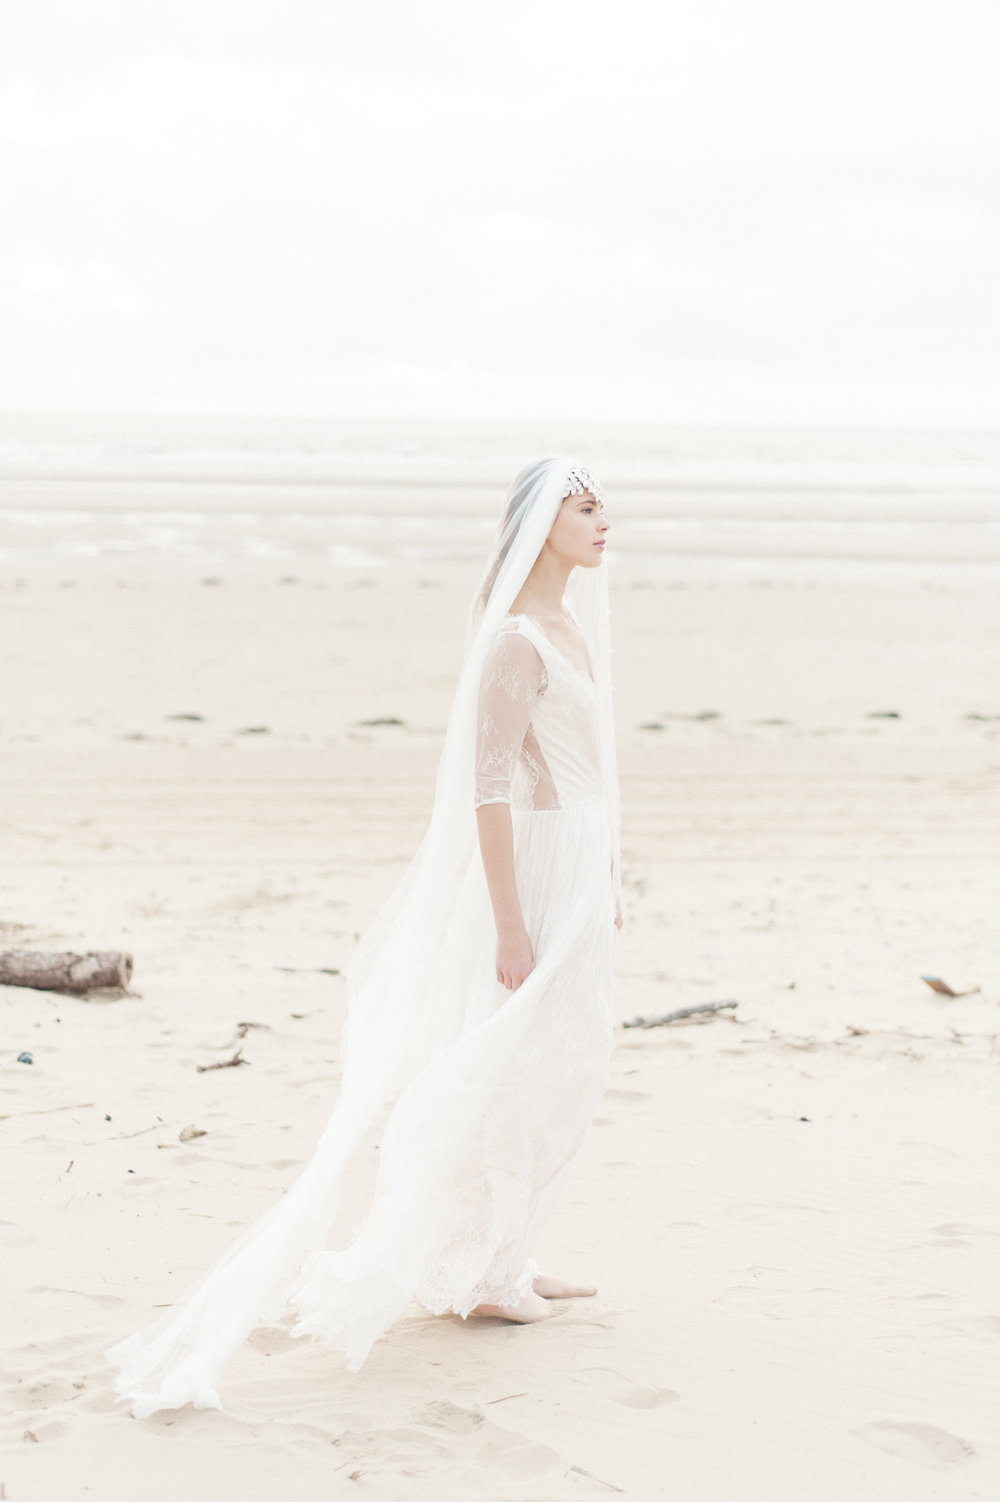 Kate-Beaumont-Wedding-Dresses-Formby-Beach-Emma-Pilkington-36.jpg